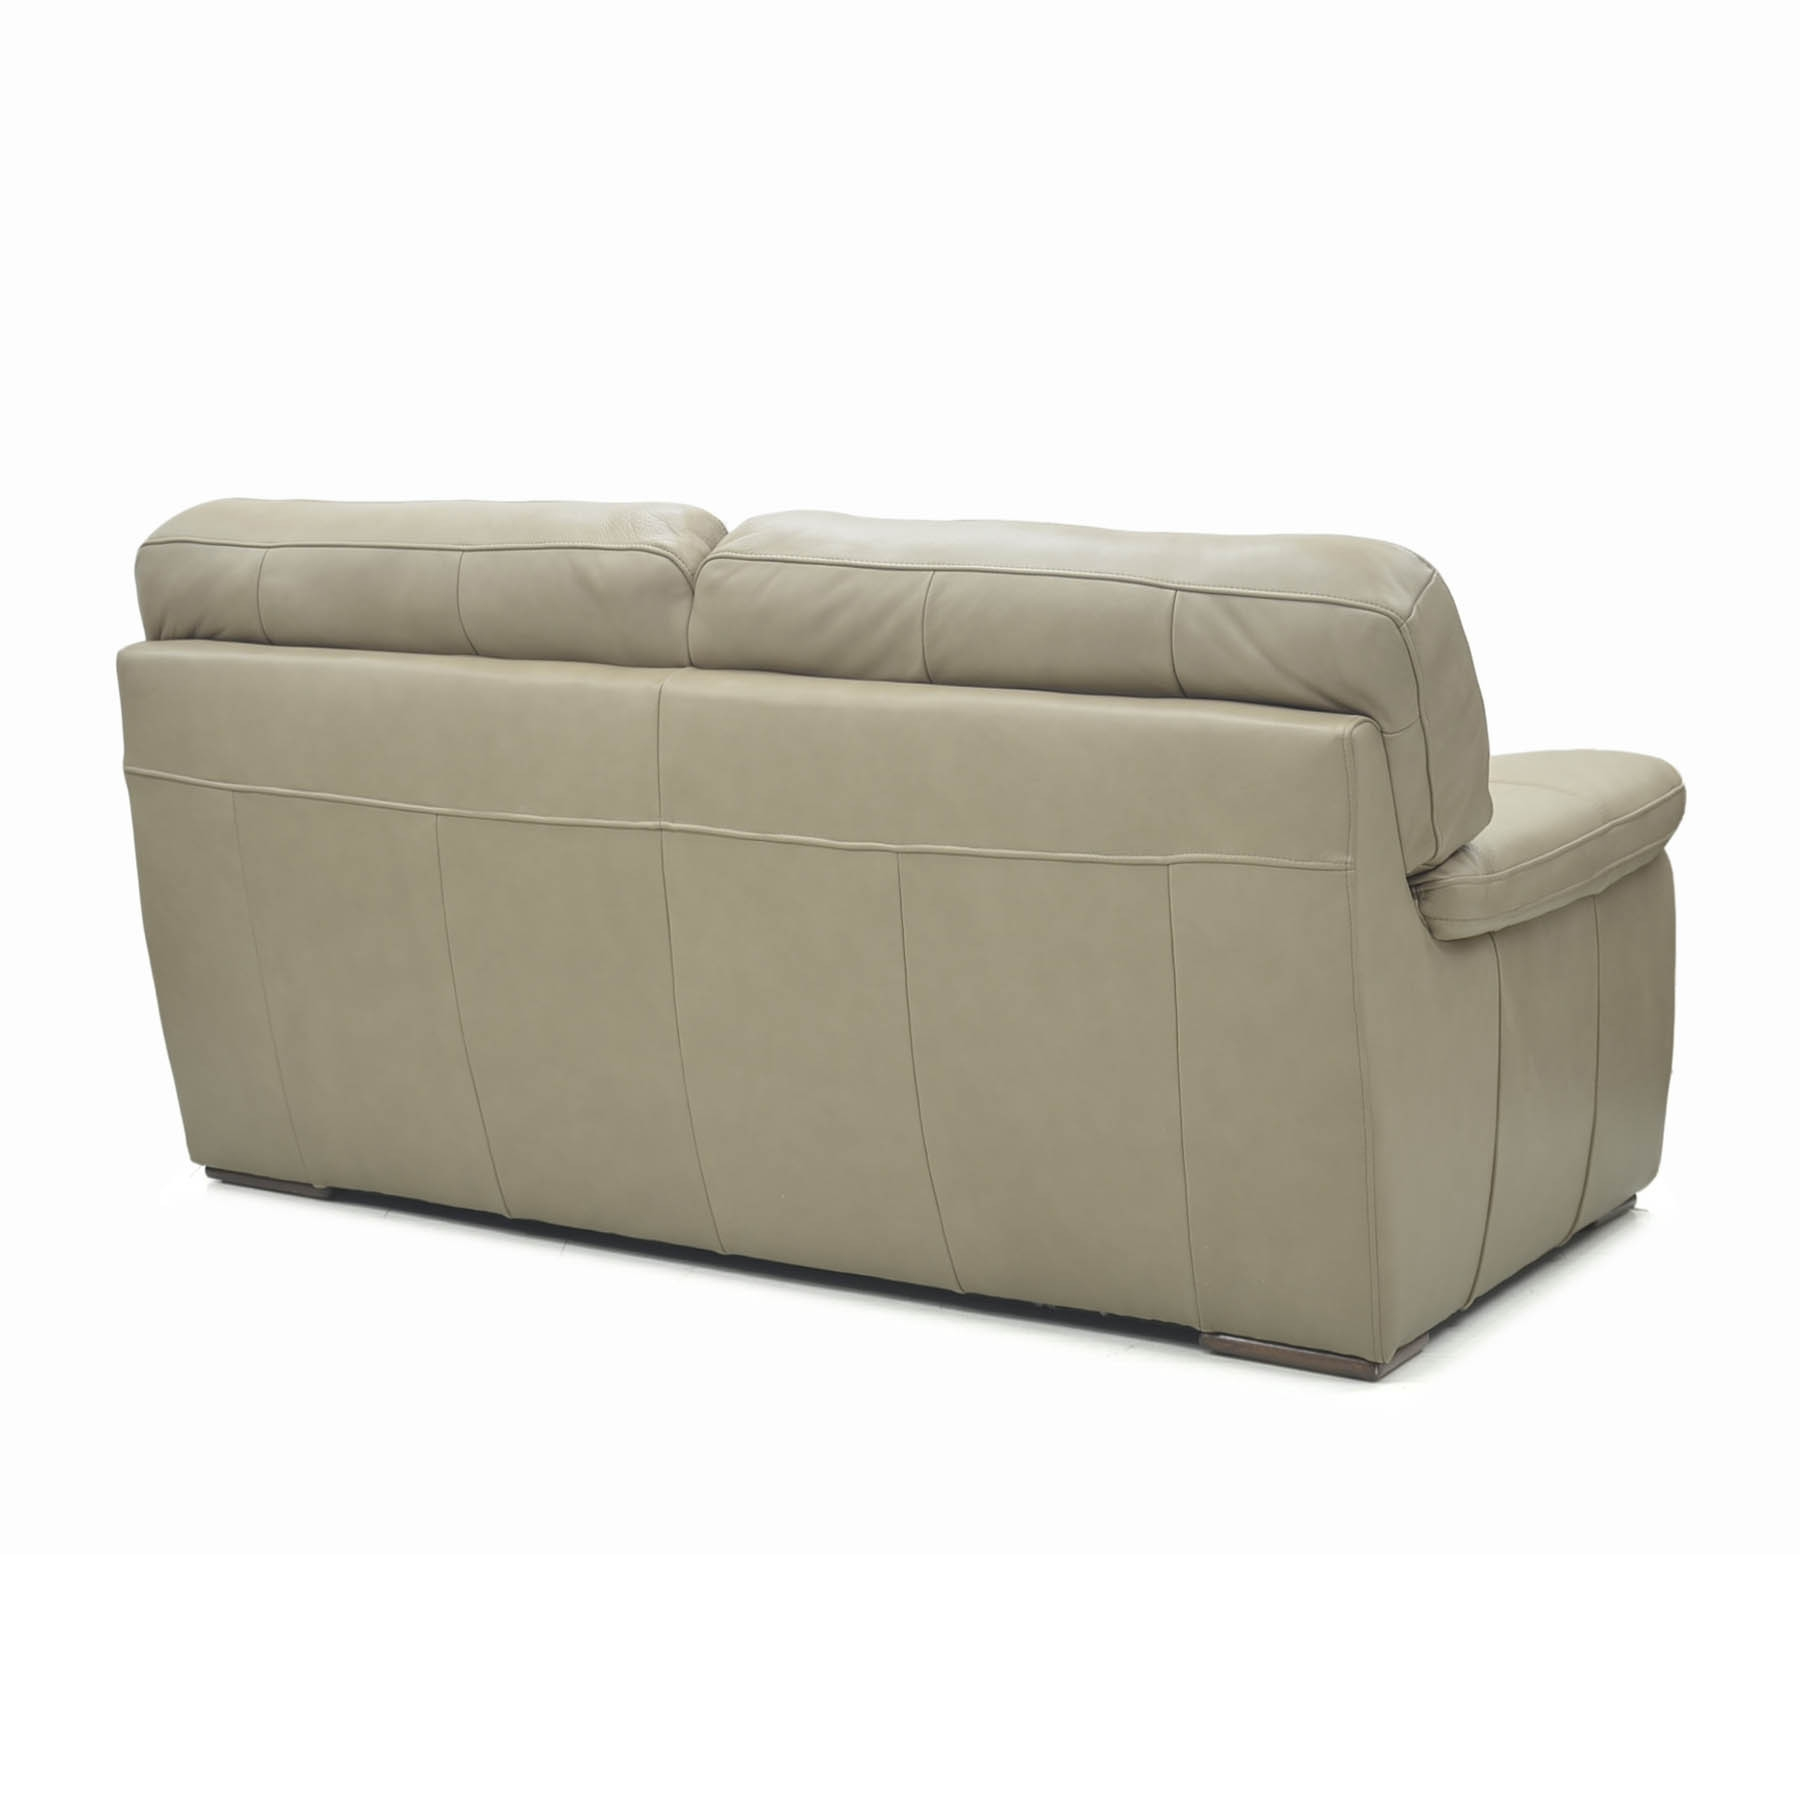 Florence Medium 2 Seater Sofa Intended For Florence Medium Sofas (View 10 of 15)